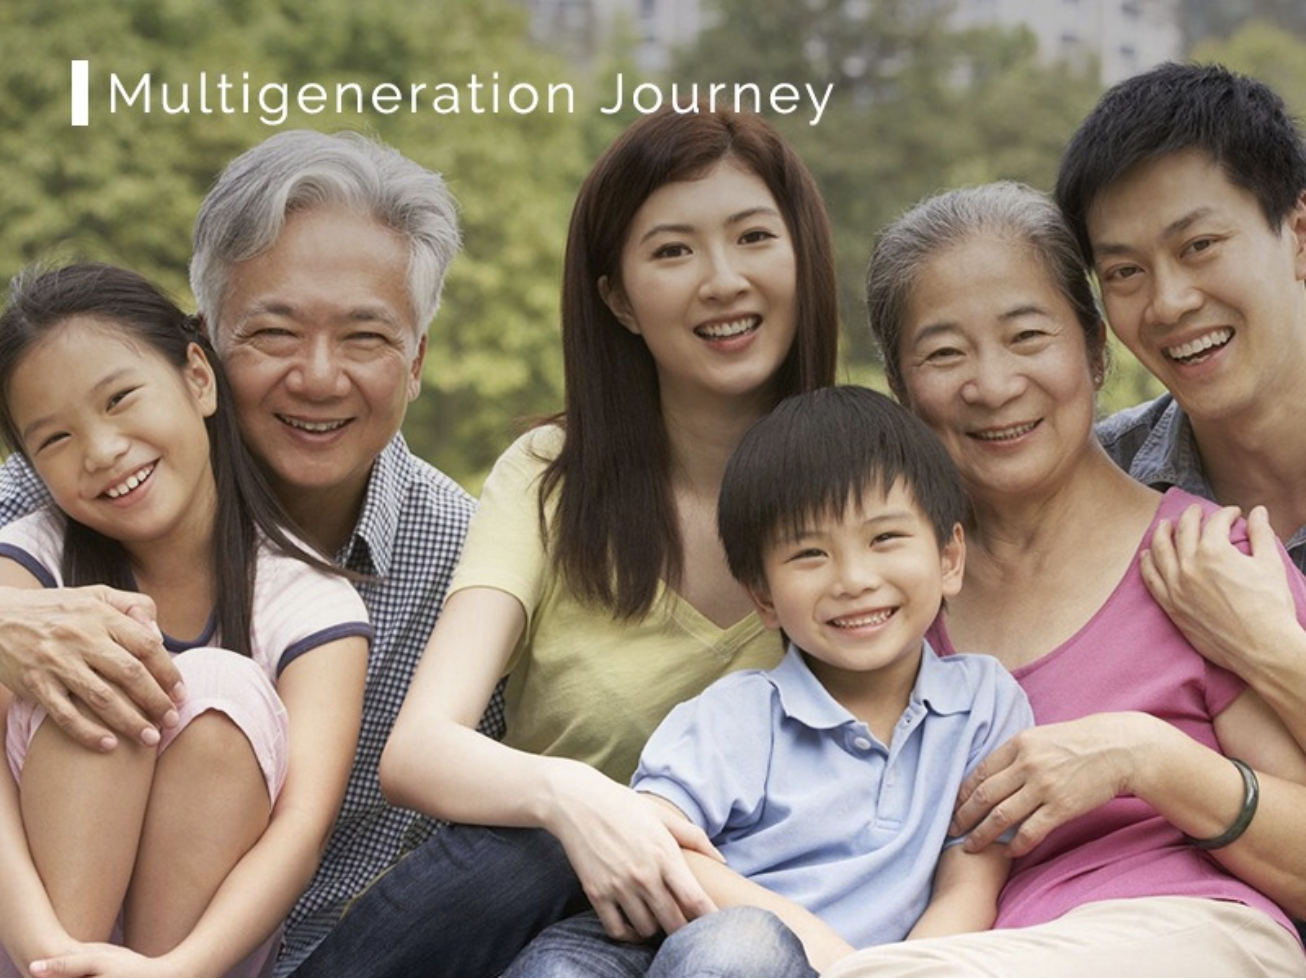 Multigeneration Journey